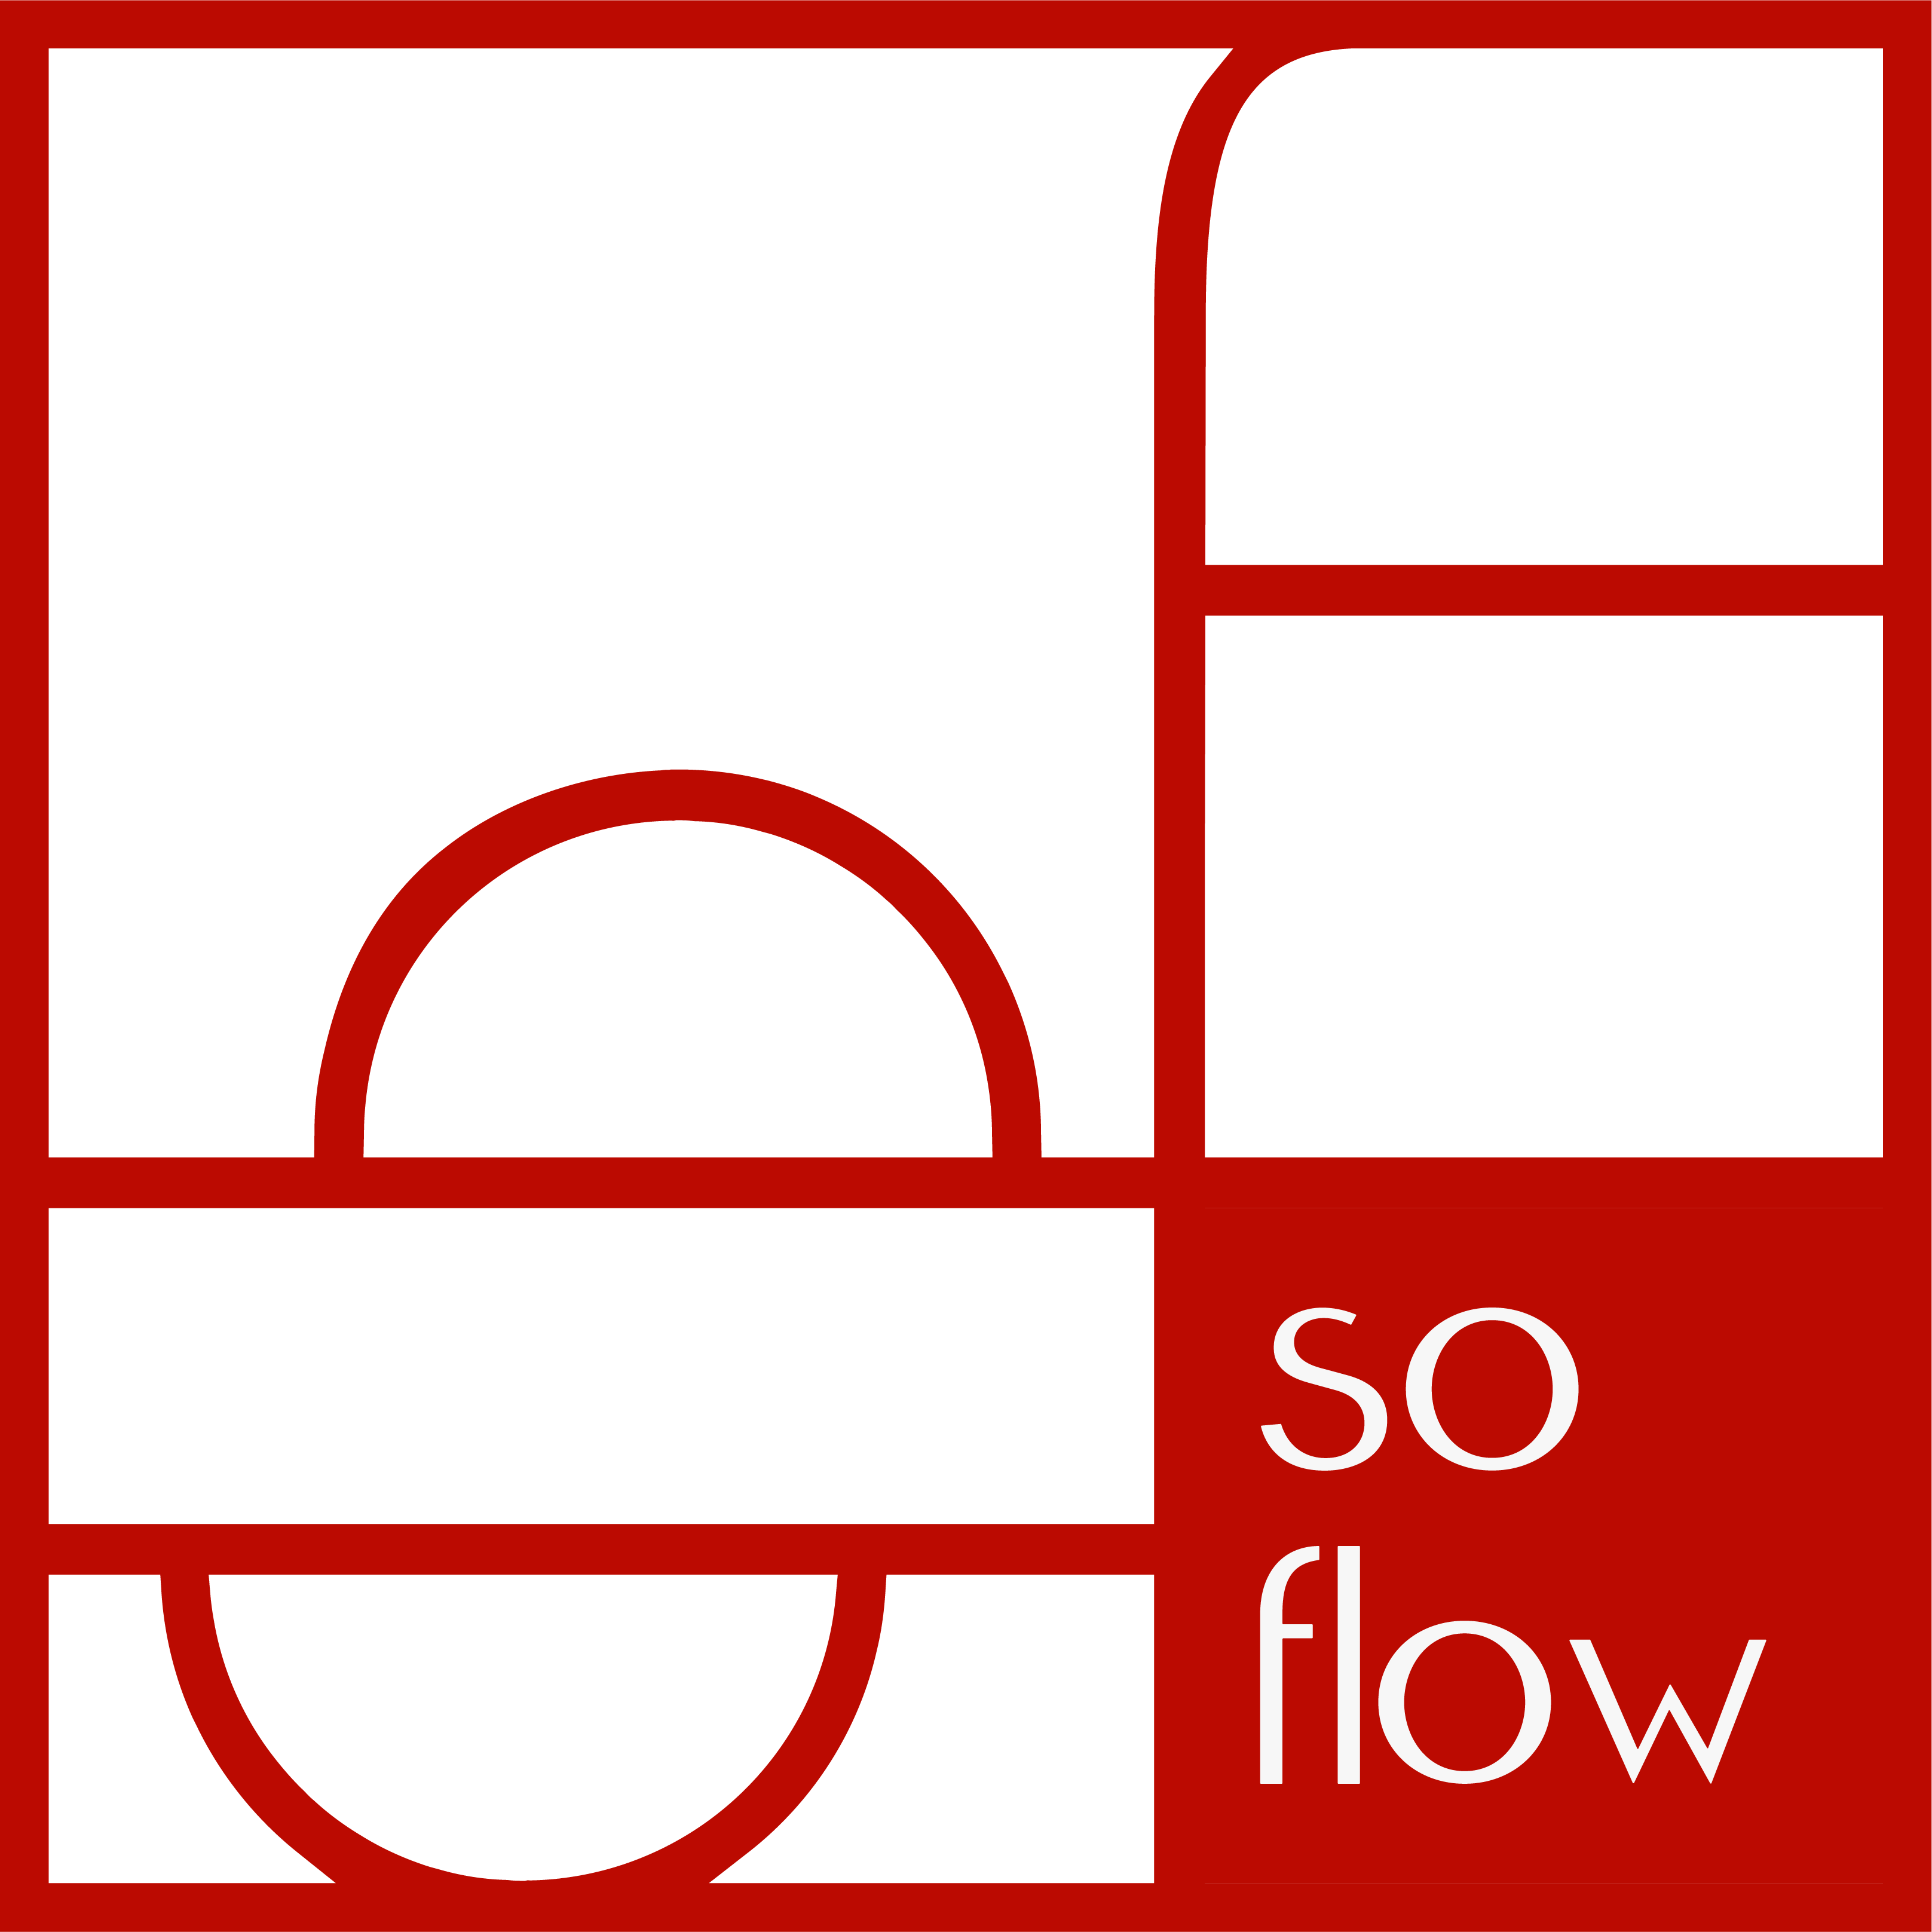 red logo of soflow, professional organizer and job coach